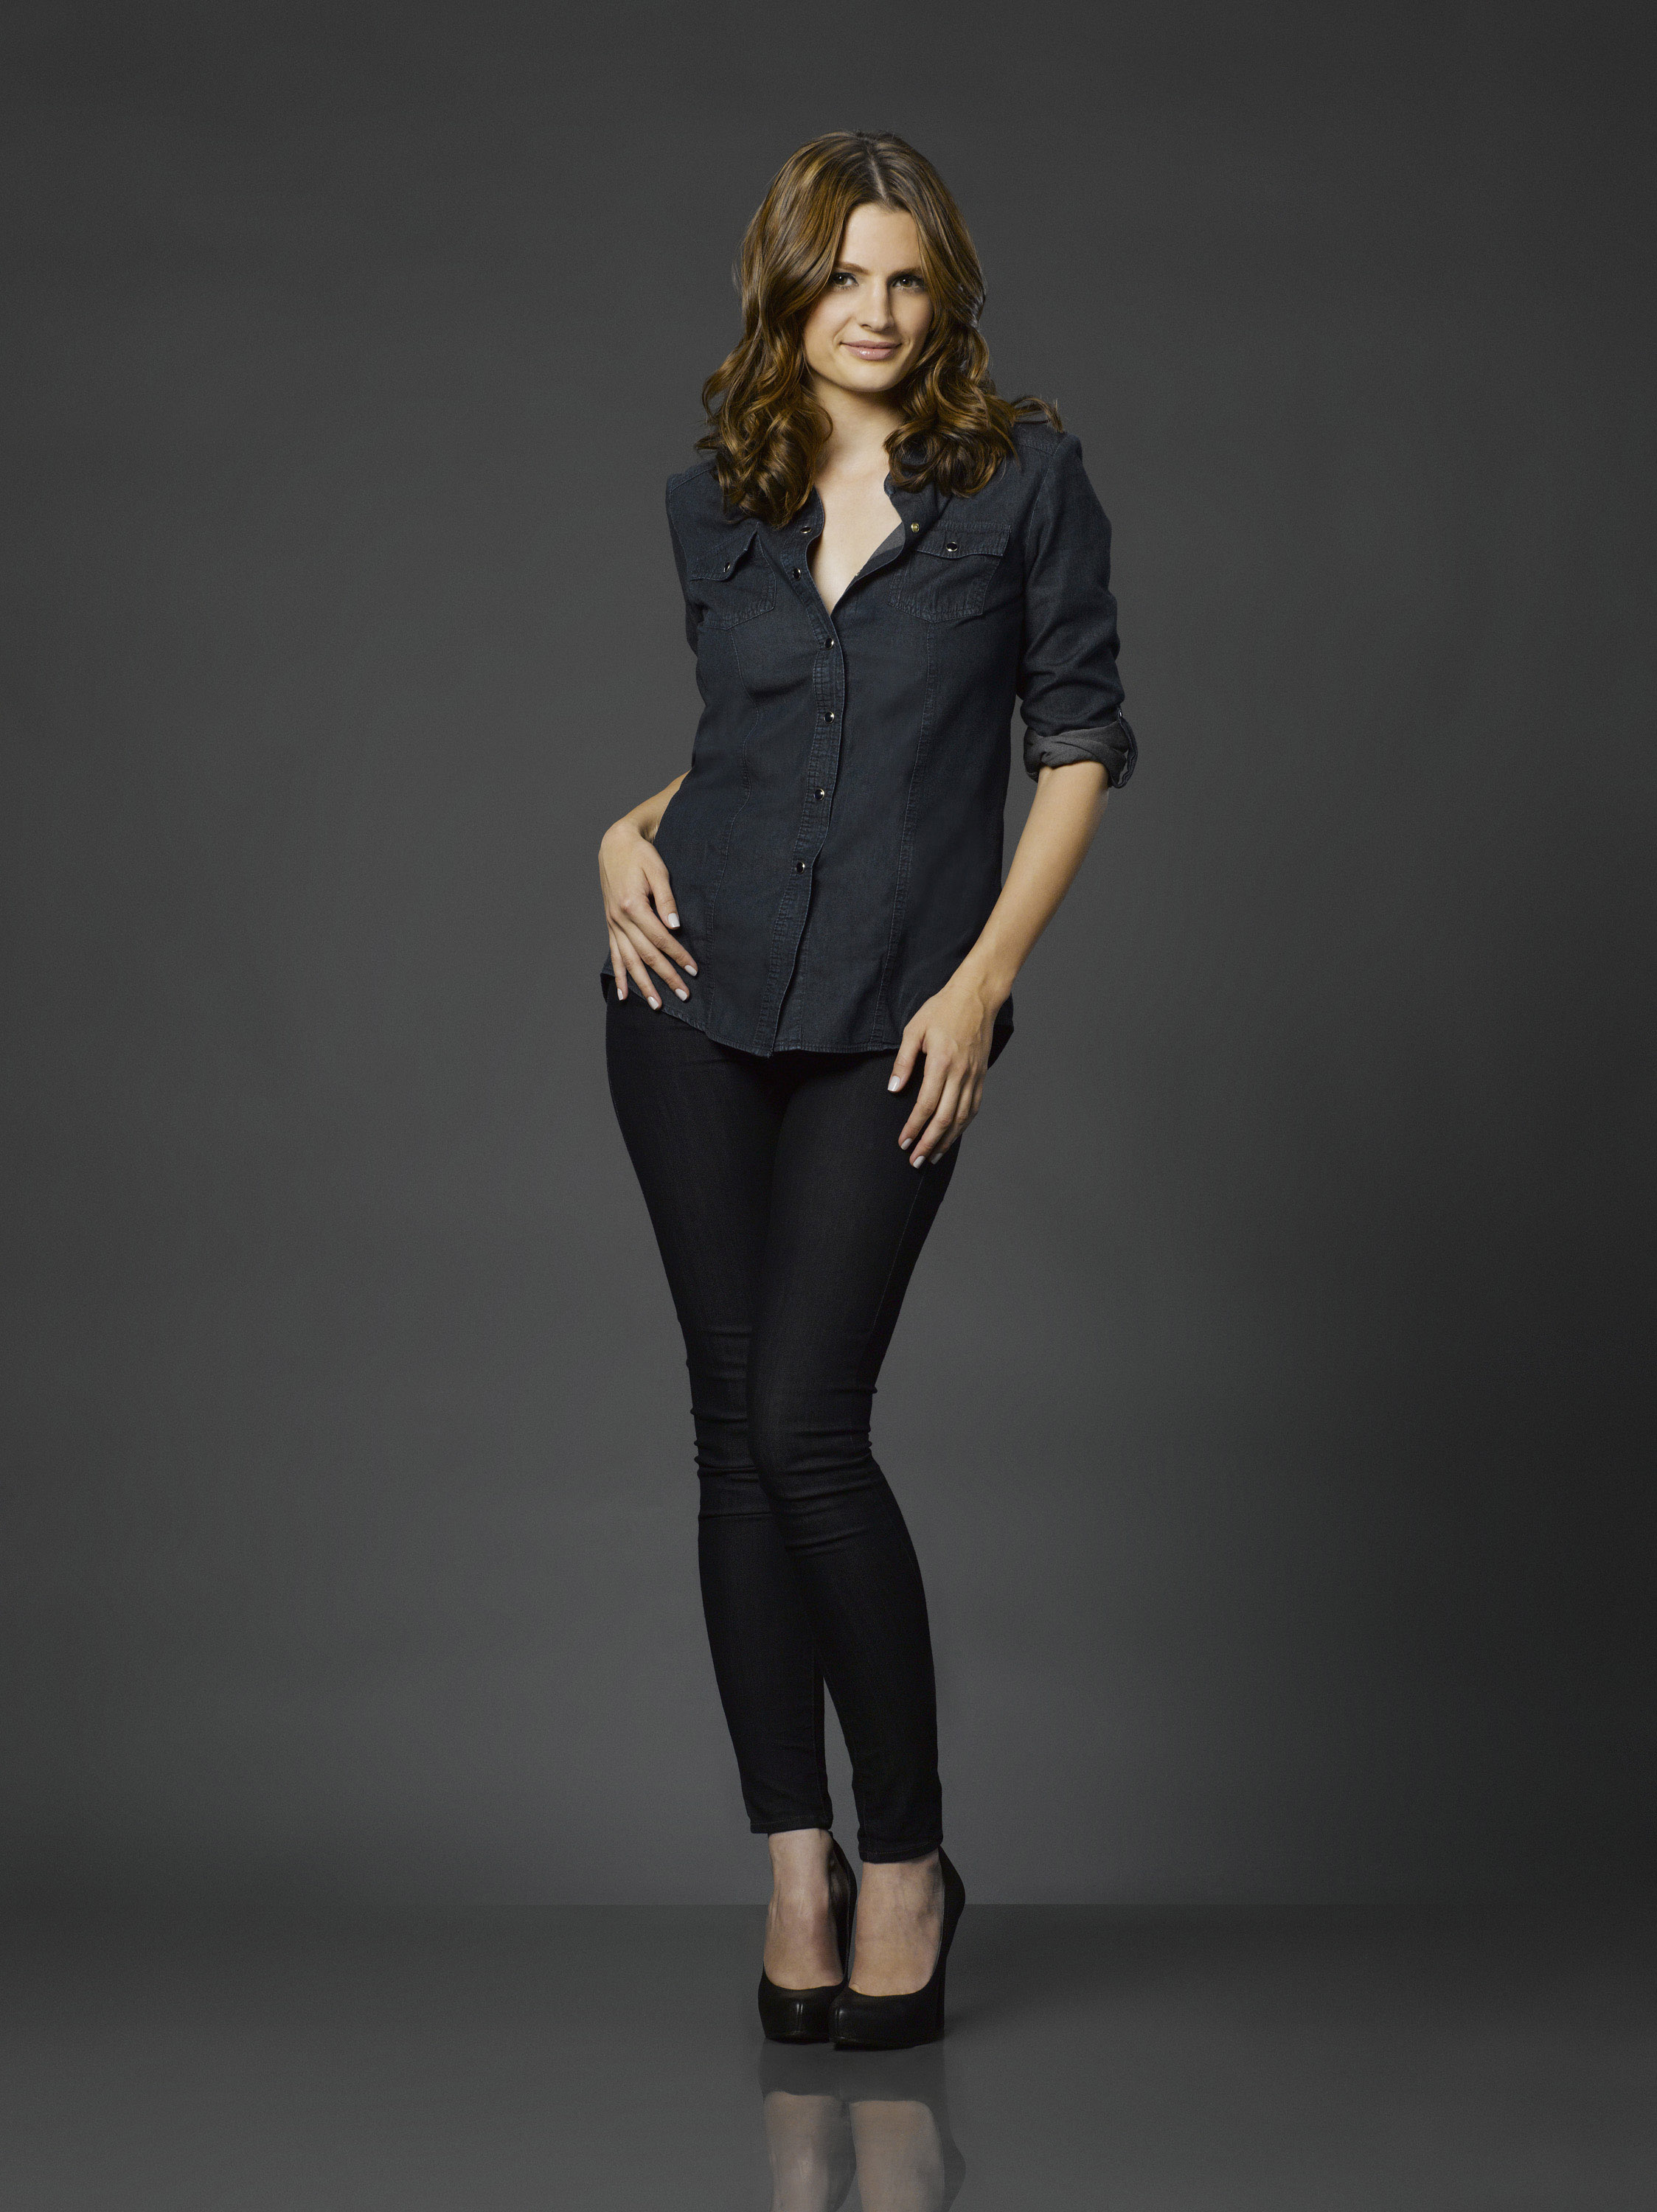 Castle TV Series, Stana Katic as Kate Beckett | DVDbash